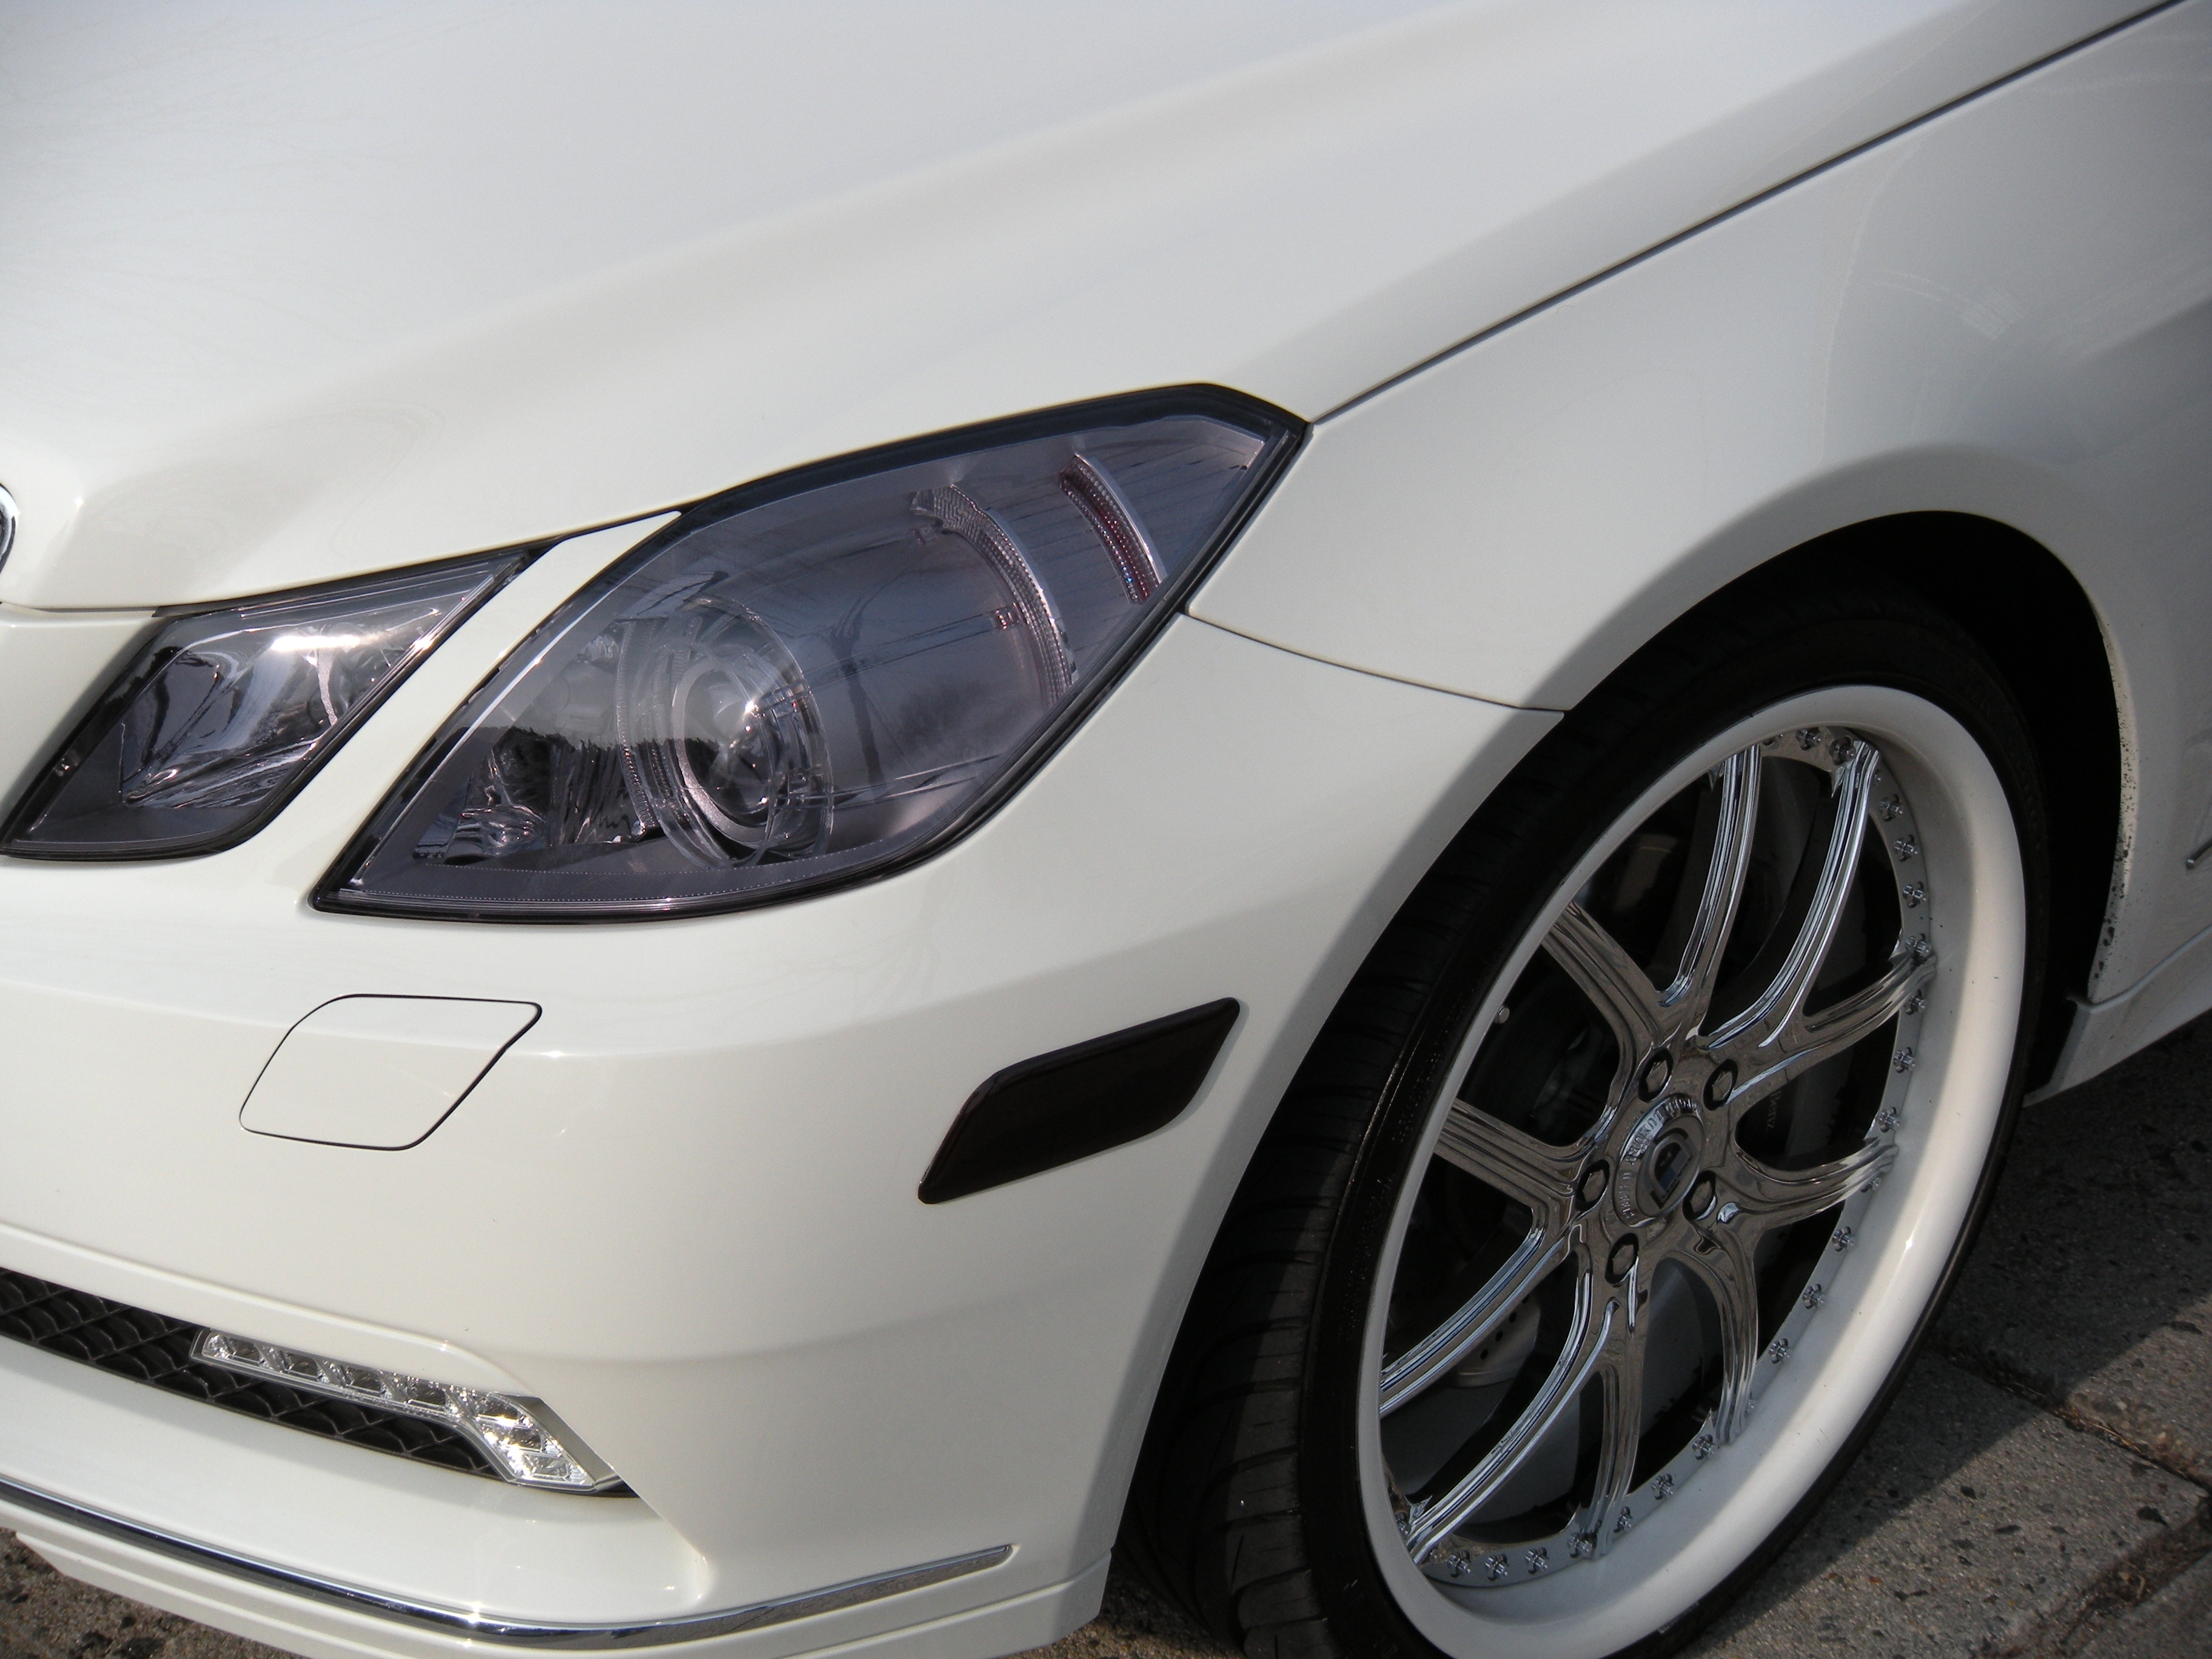 YoUnG_MoNeY_BX 2010 Mercedes-Benz E-Class 13358726